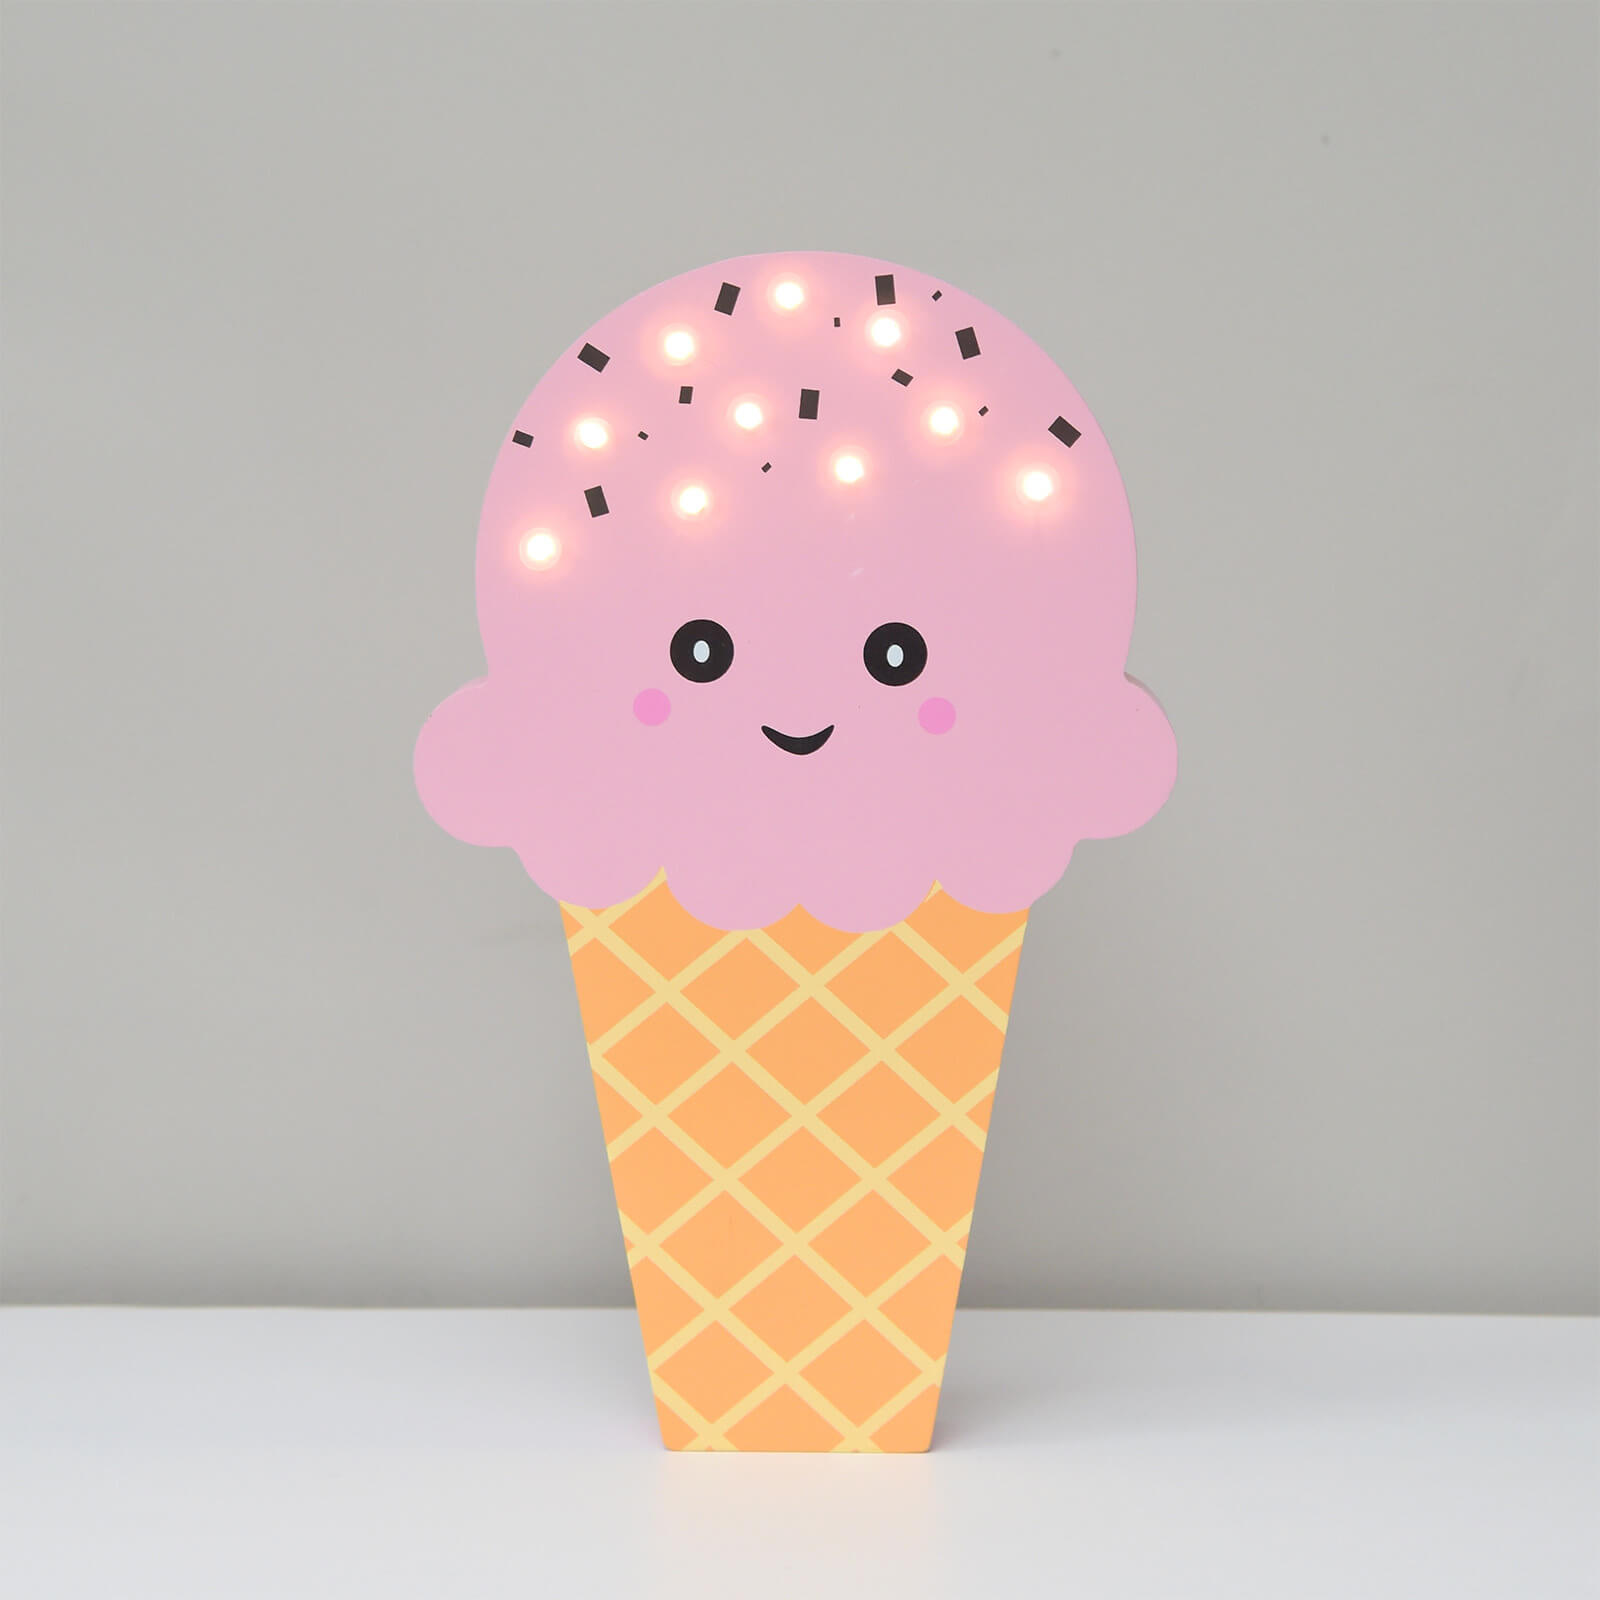 Smiling Faces Up in Lights - Pink Ice Cream